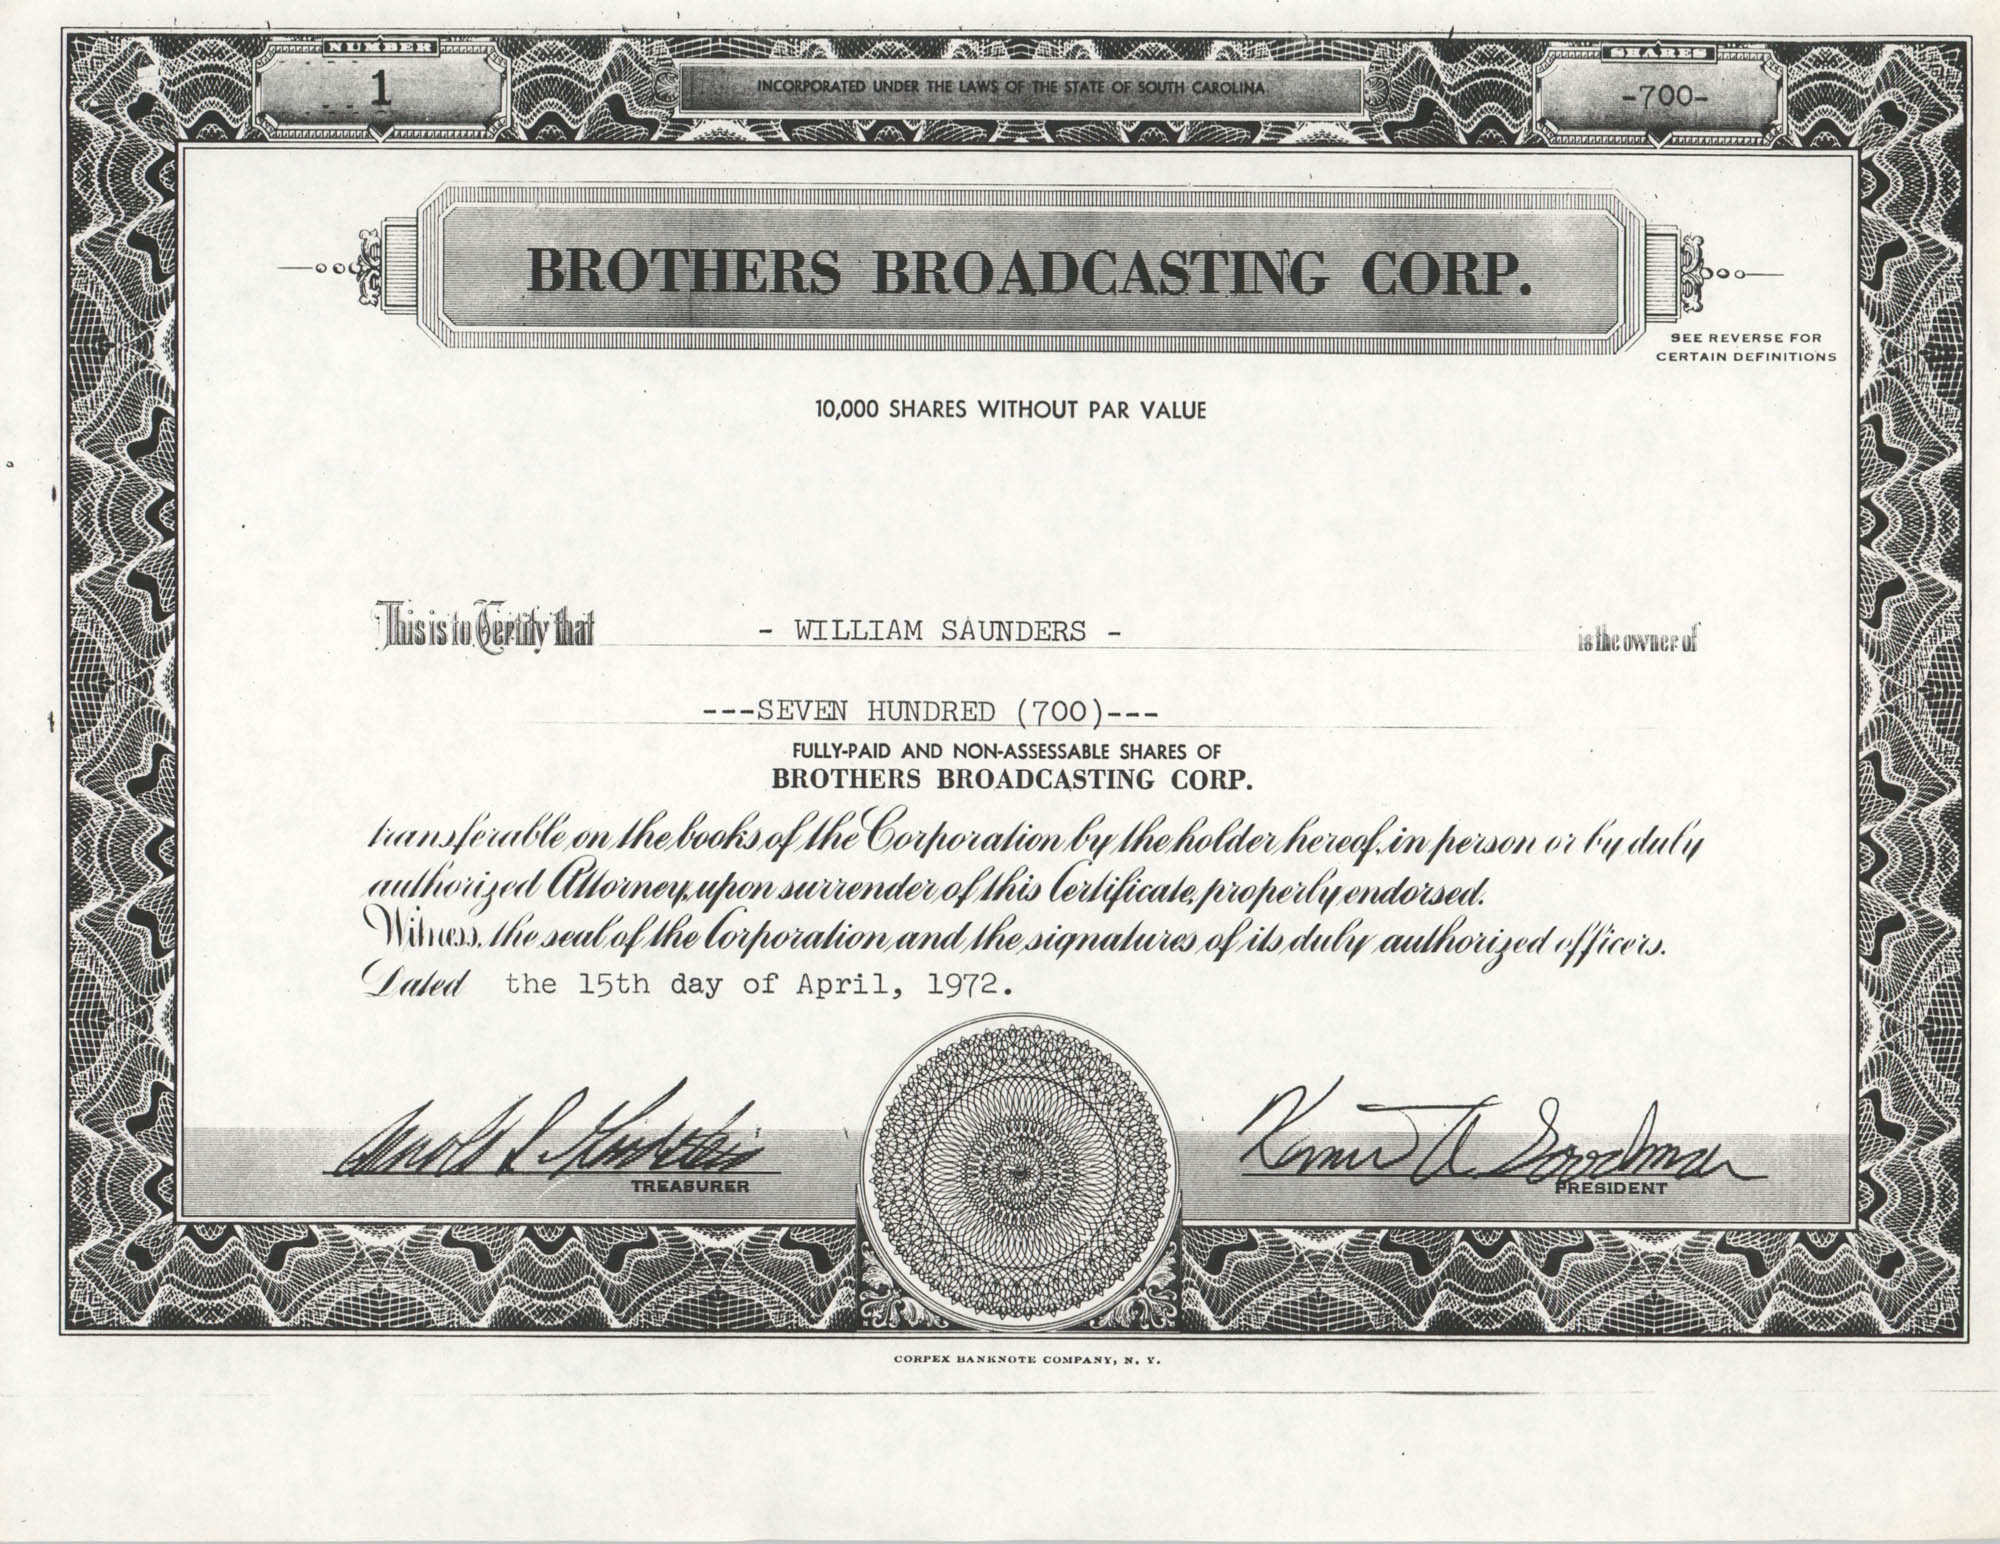 Brothers Broadcasting Corporation Share Certificate